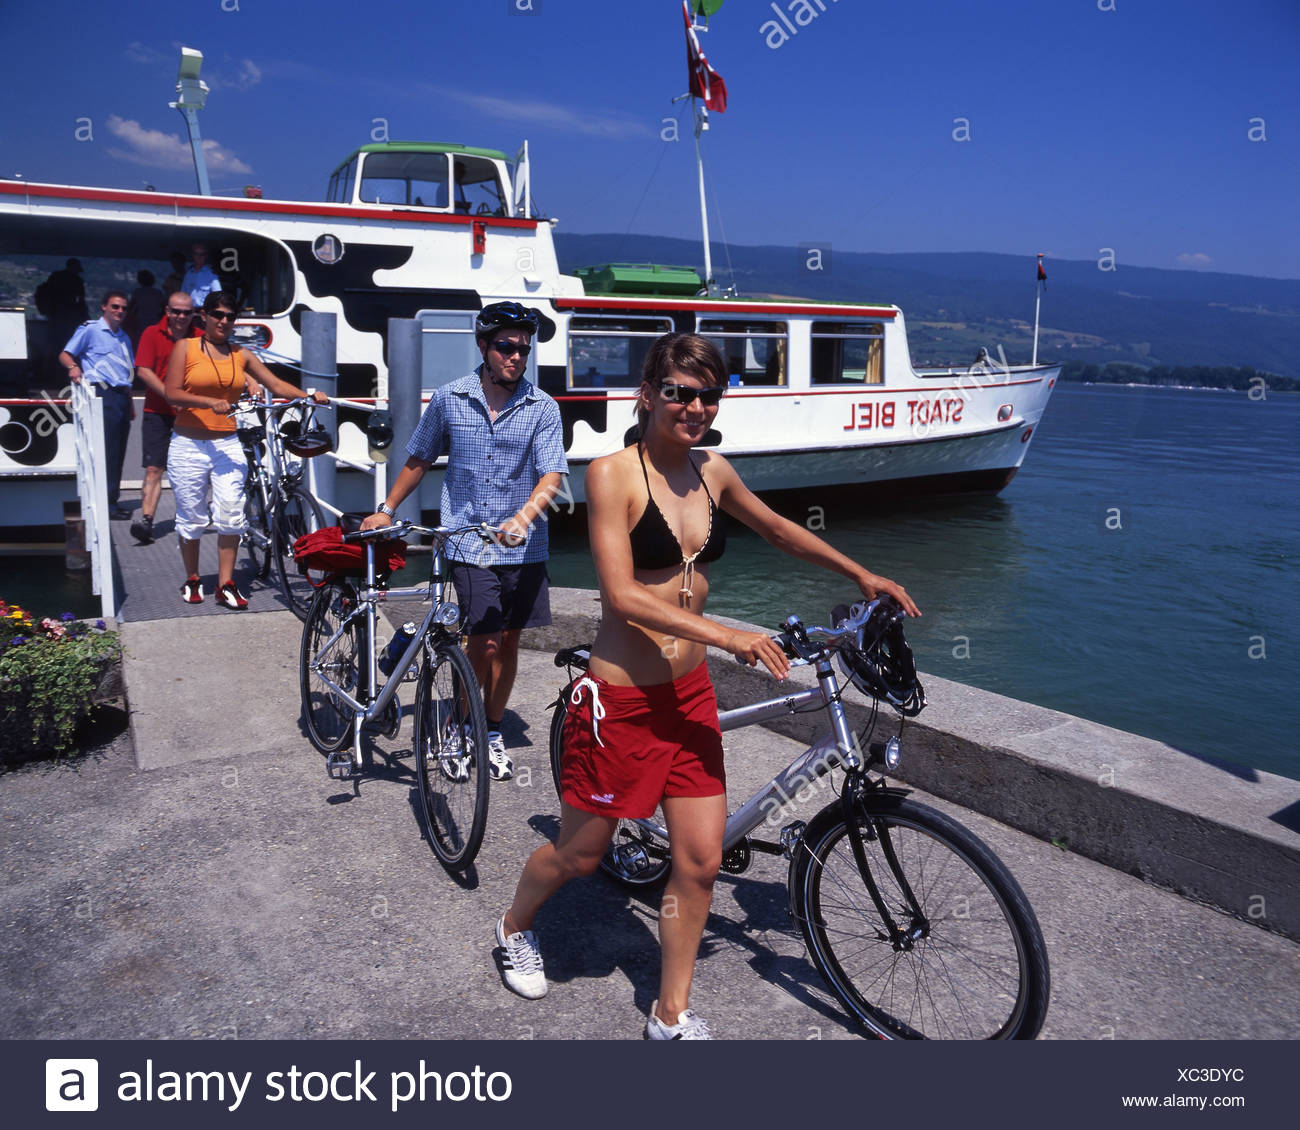 Canton Bern bicycle Bielersee Lake Biel bike canton Erlach excursion group lake lakes passengers scenery - Stock Image